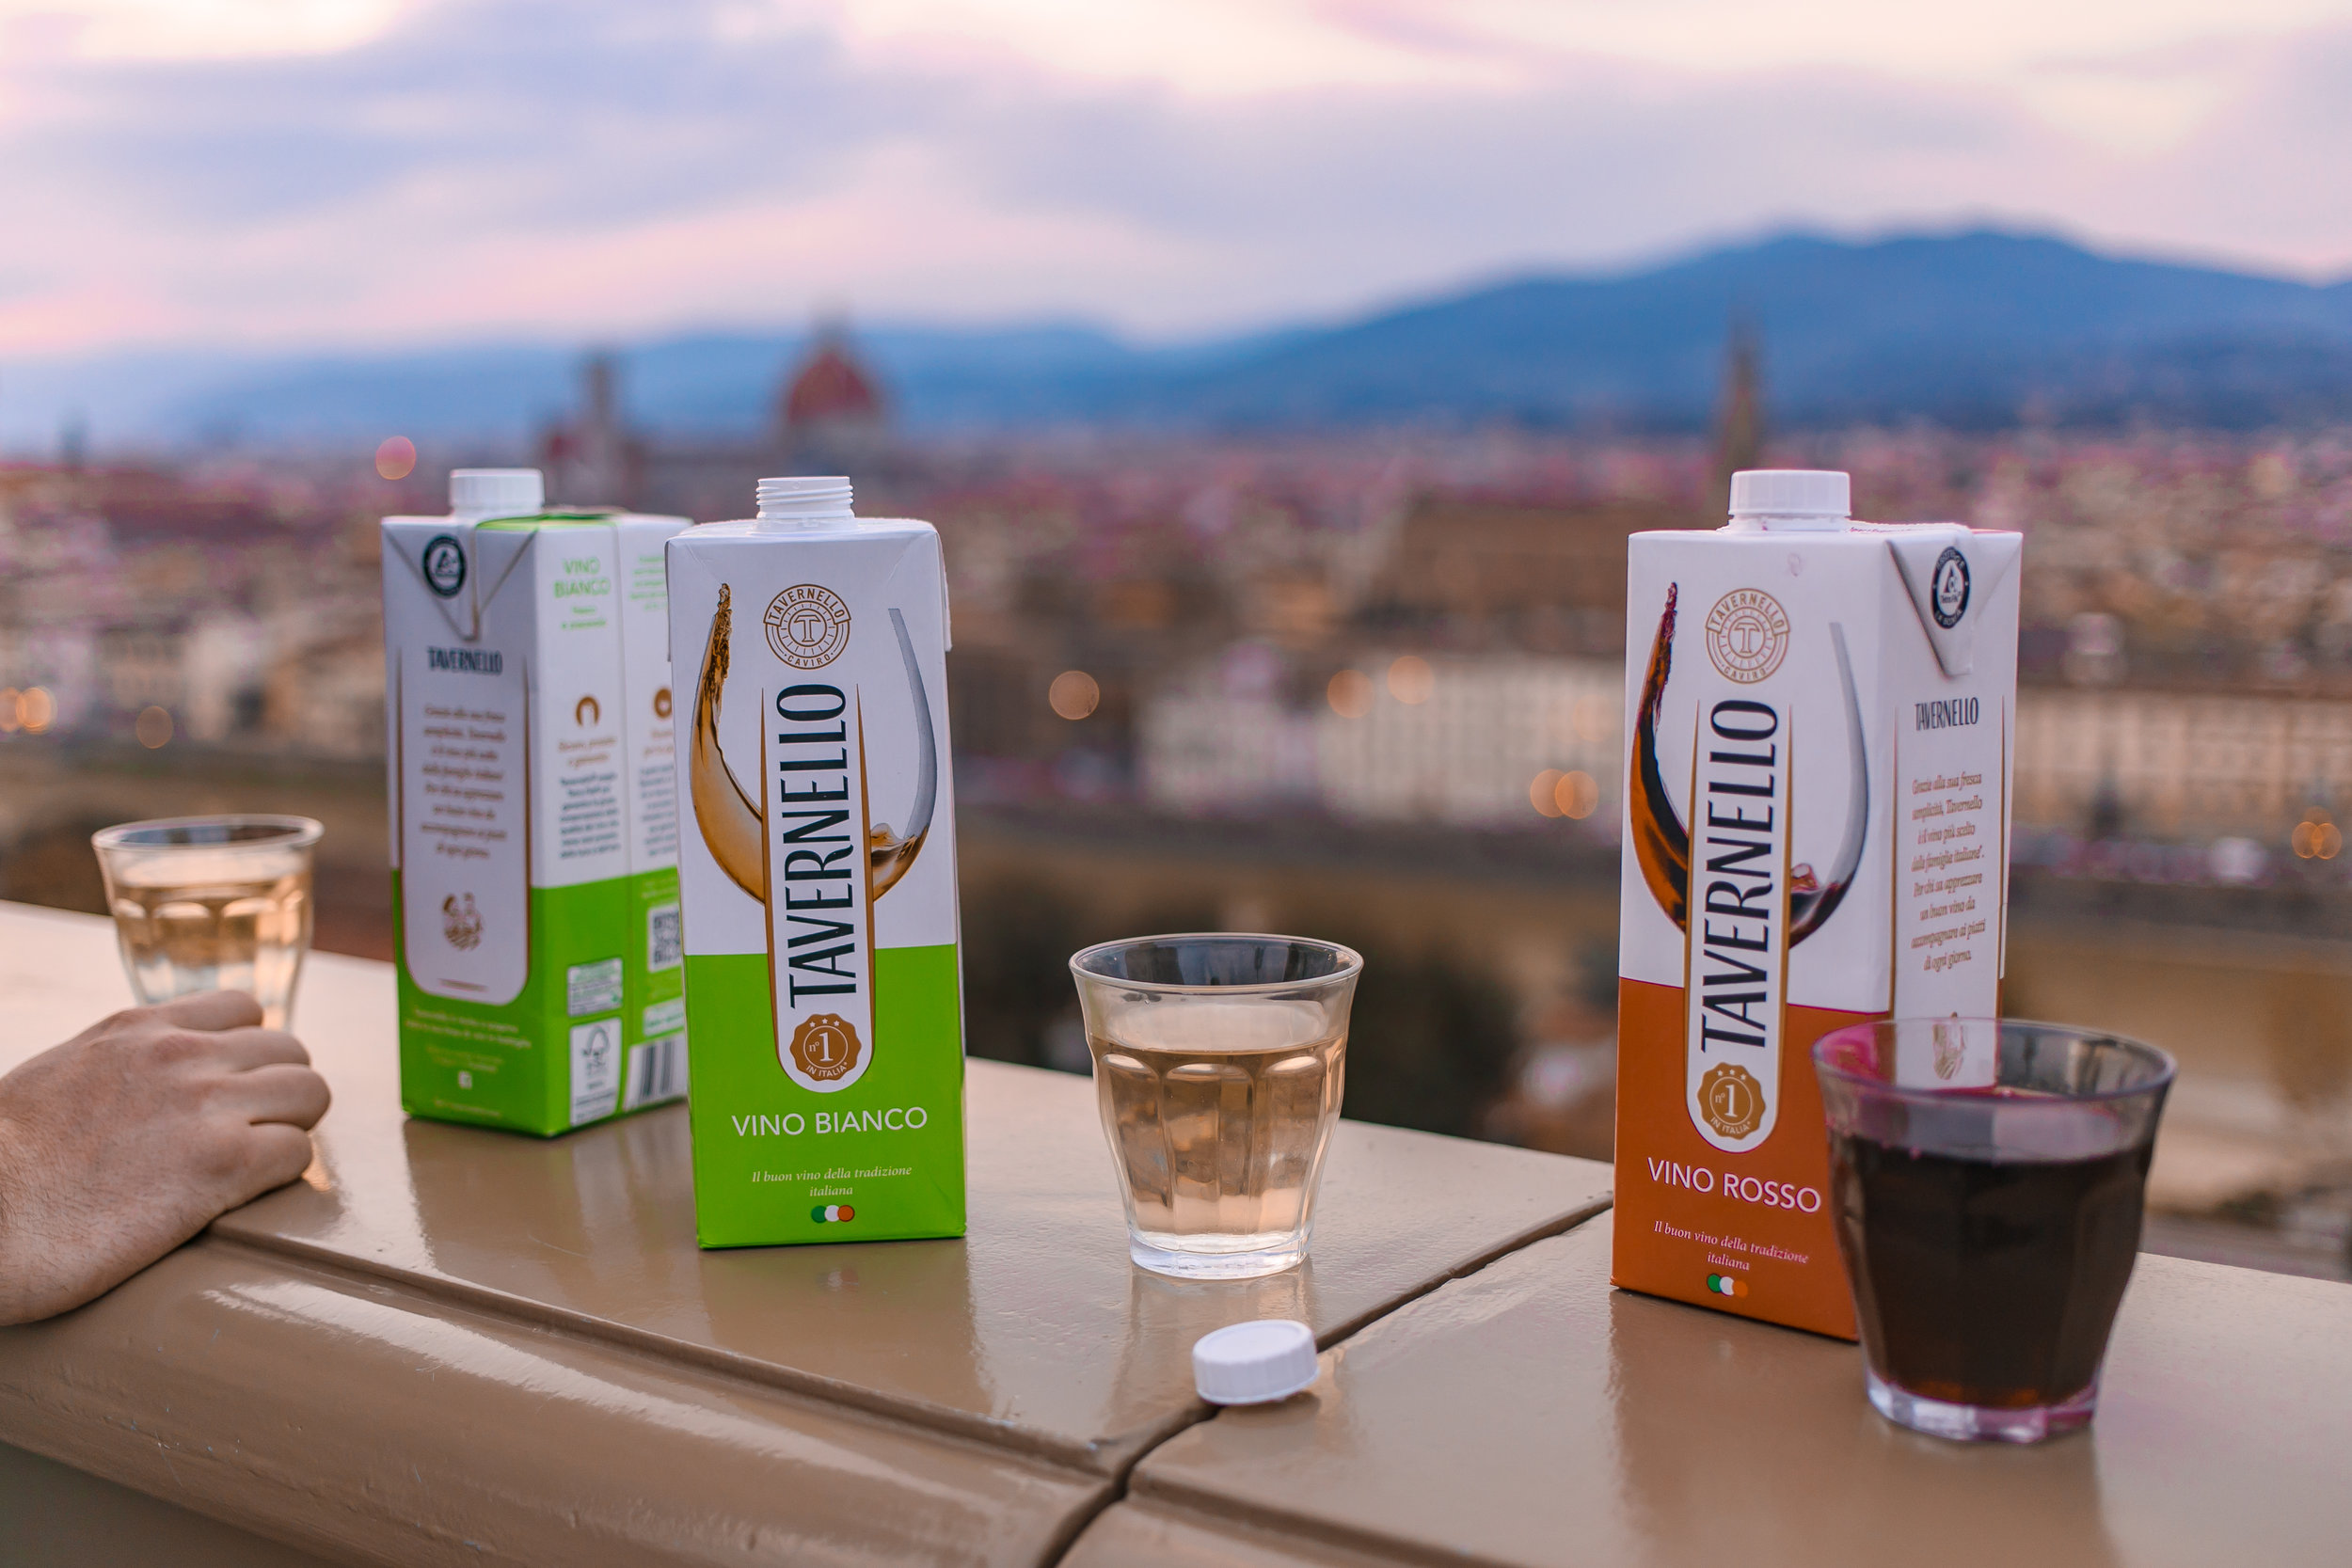 Watching the sunset with snacks and drinks at Piazzale Michelangelo, one of the best things to do in Florence!